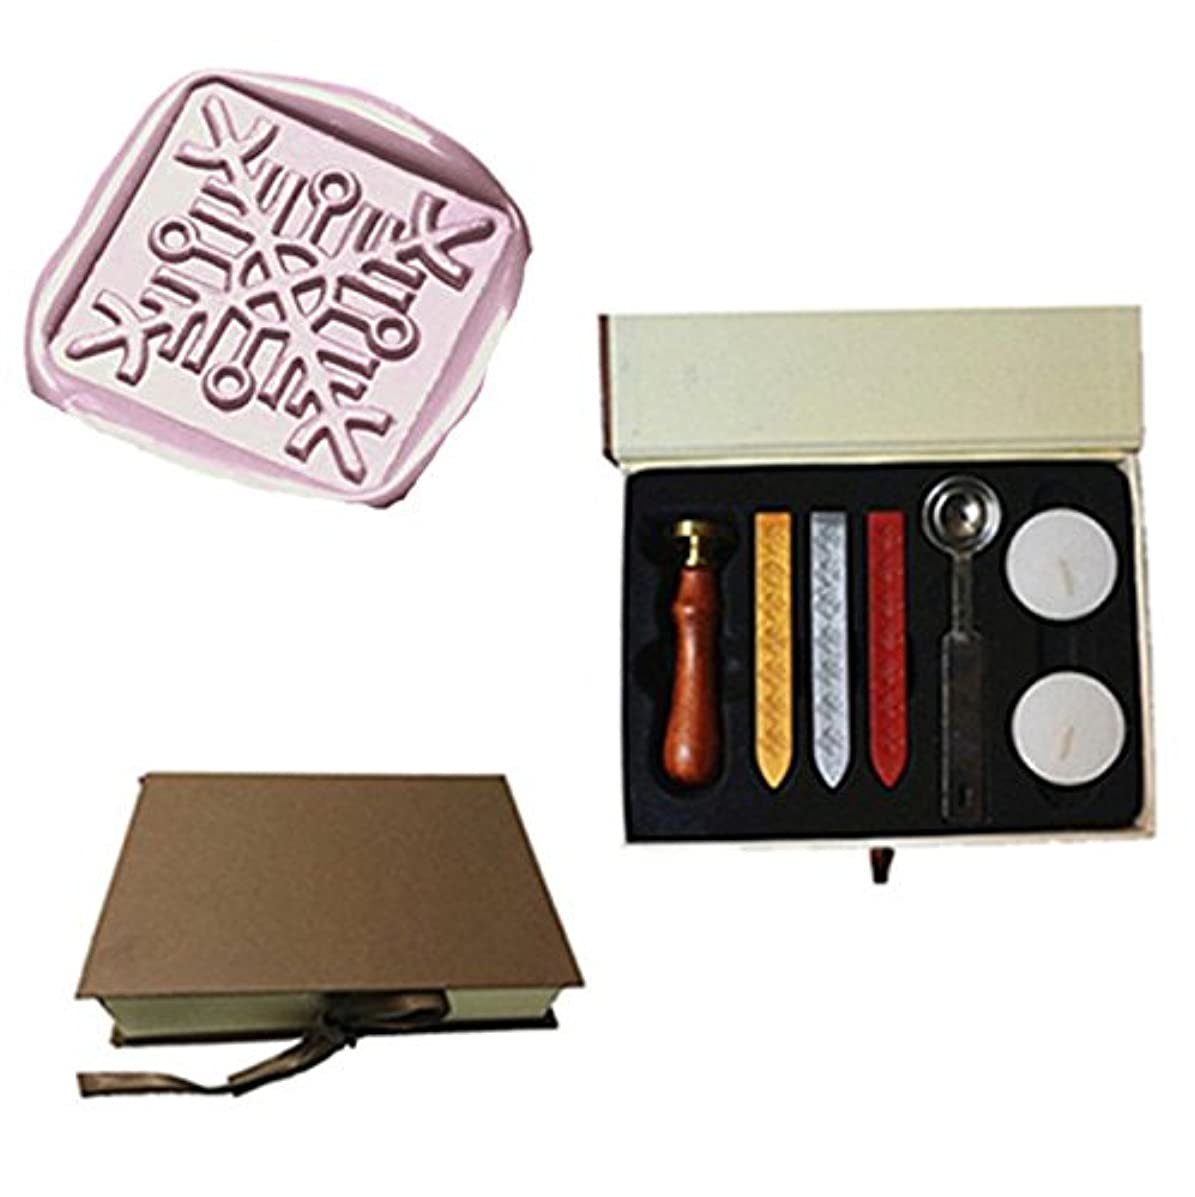 MDLG Vintage Square Snowflake Cross Decorative Custom Picture Logo Wedding Invitation Wax Seal Sealing Stamp Sticks Spoon Gift Box Set Kit